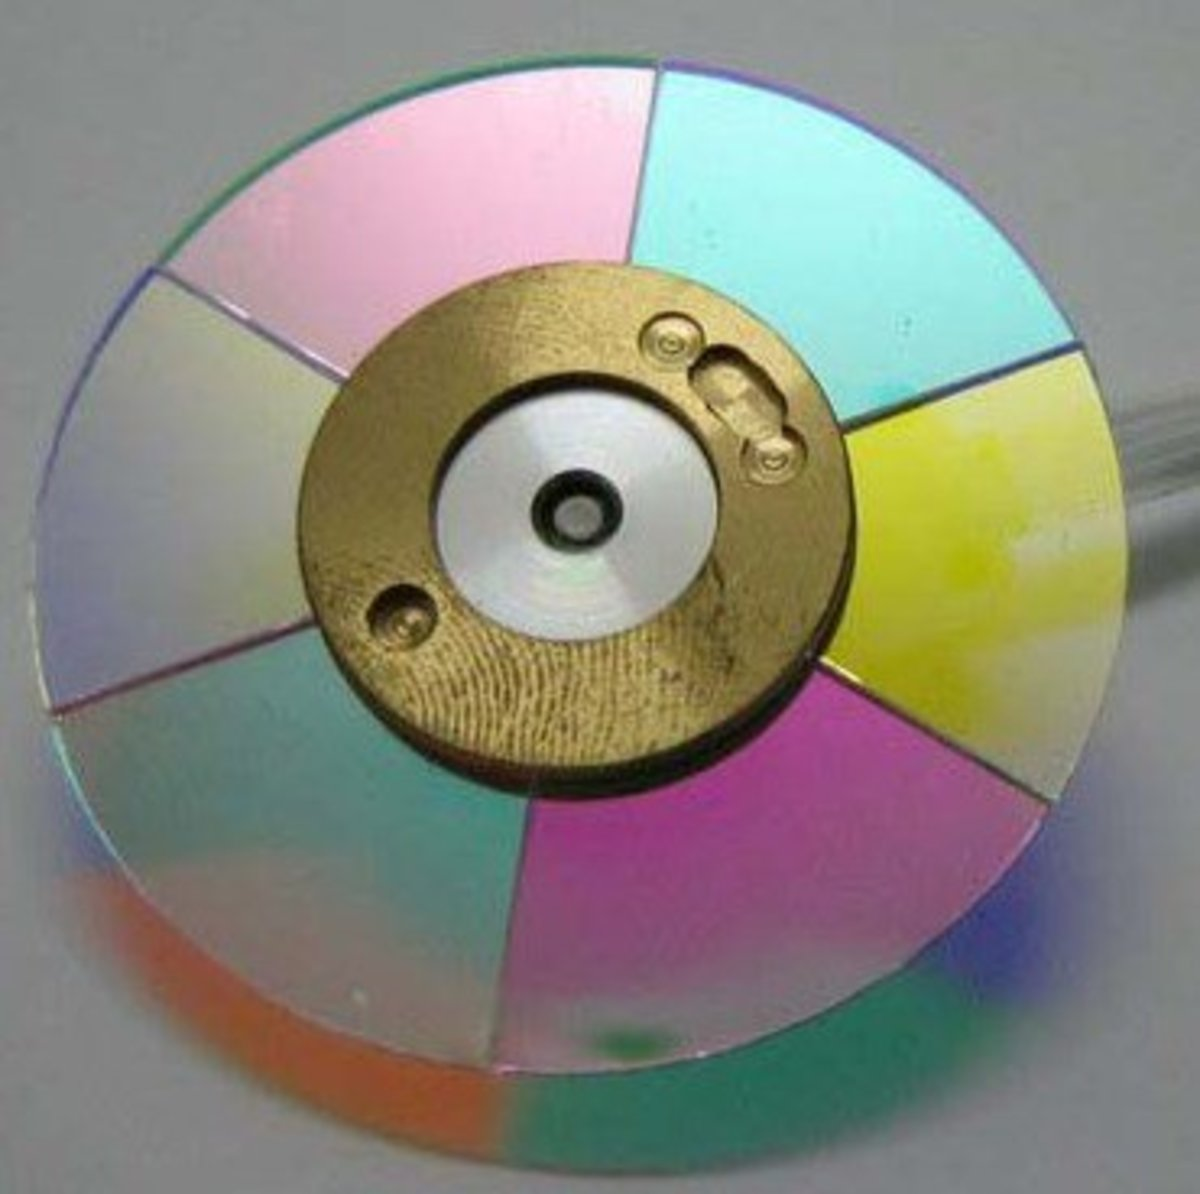 This is what the colour wheel looks like.